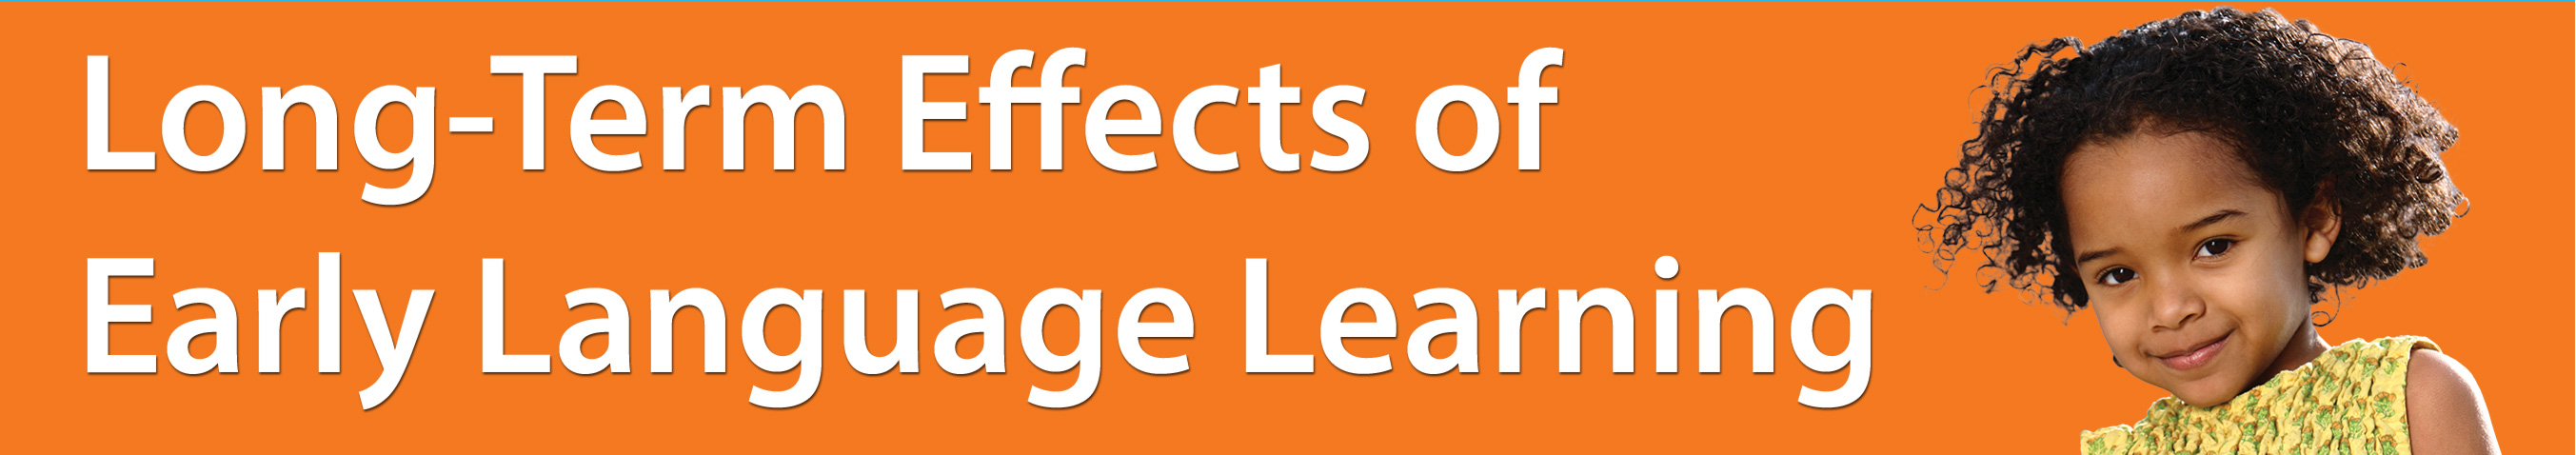 Long-Term Effects of Early Language Learning